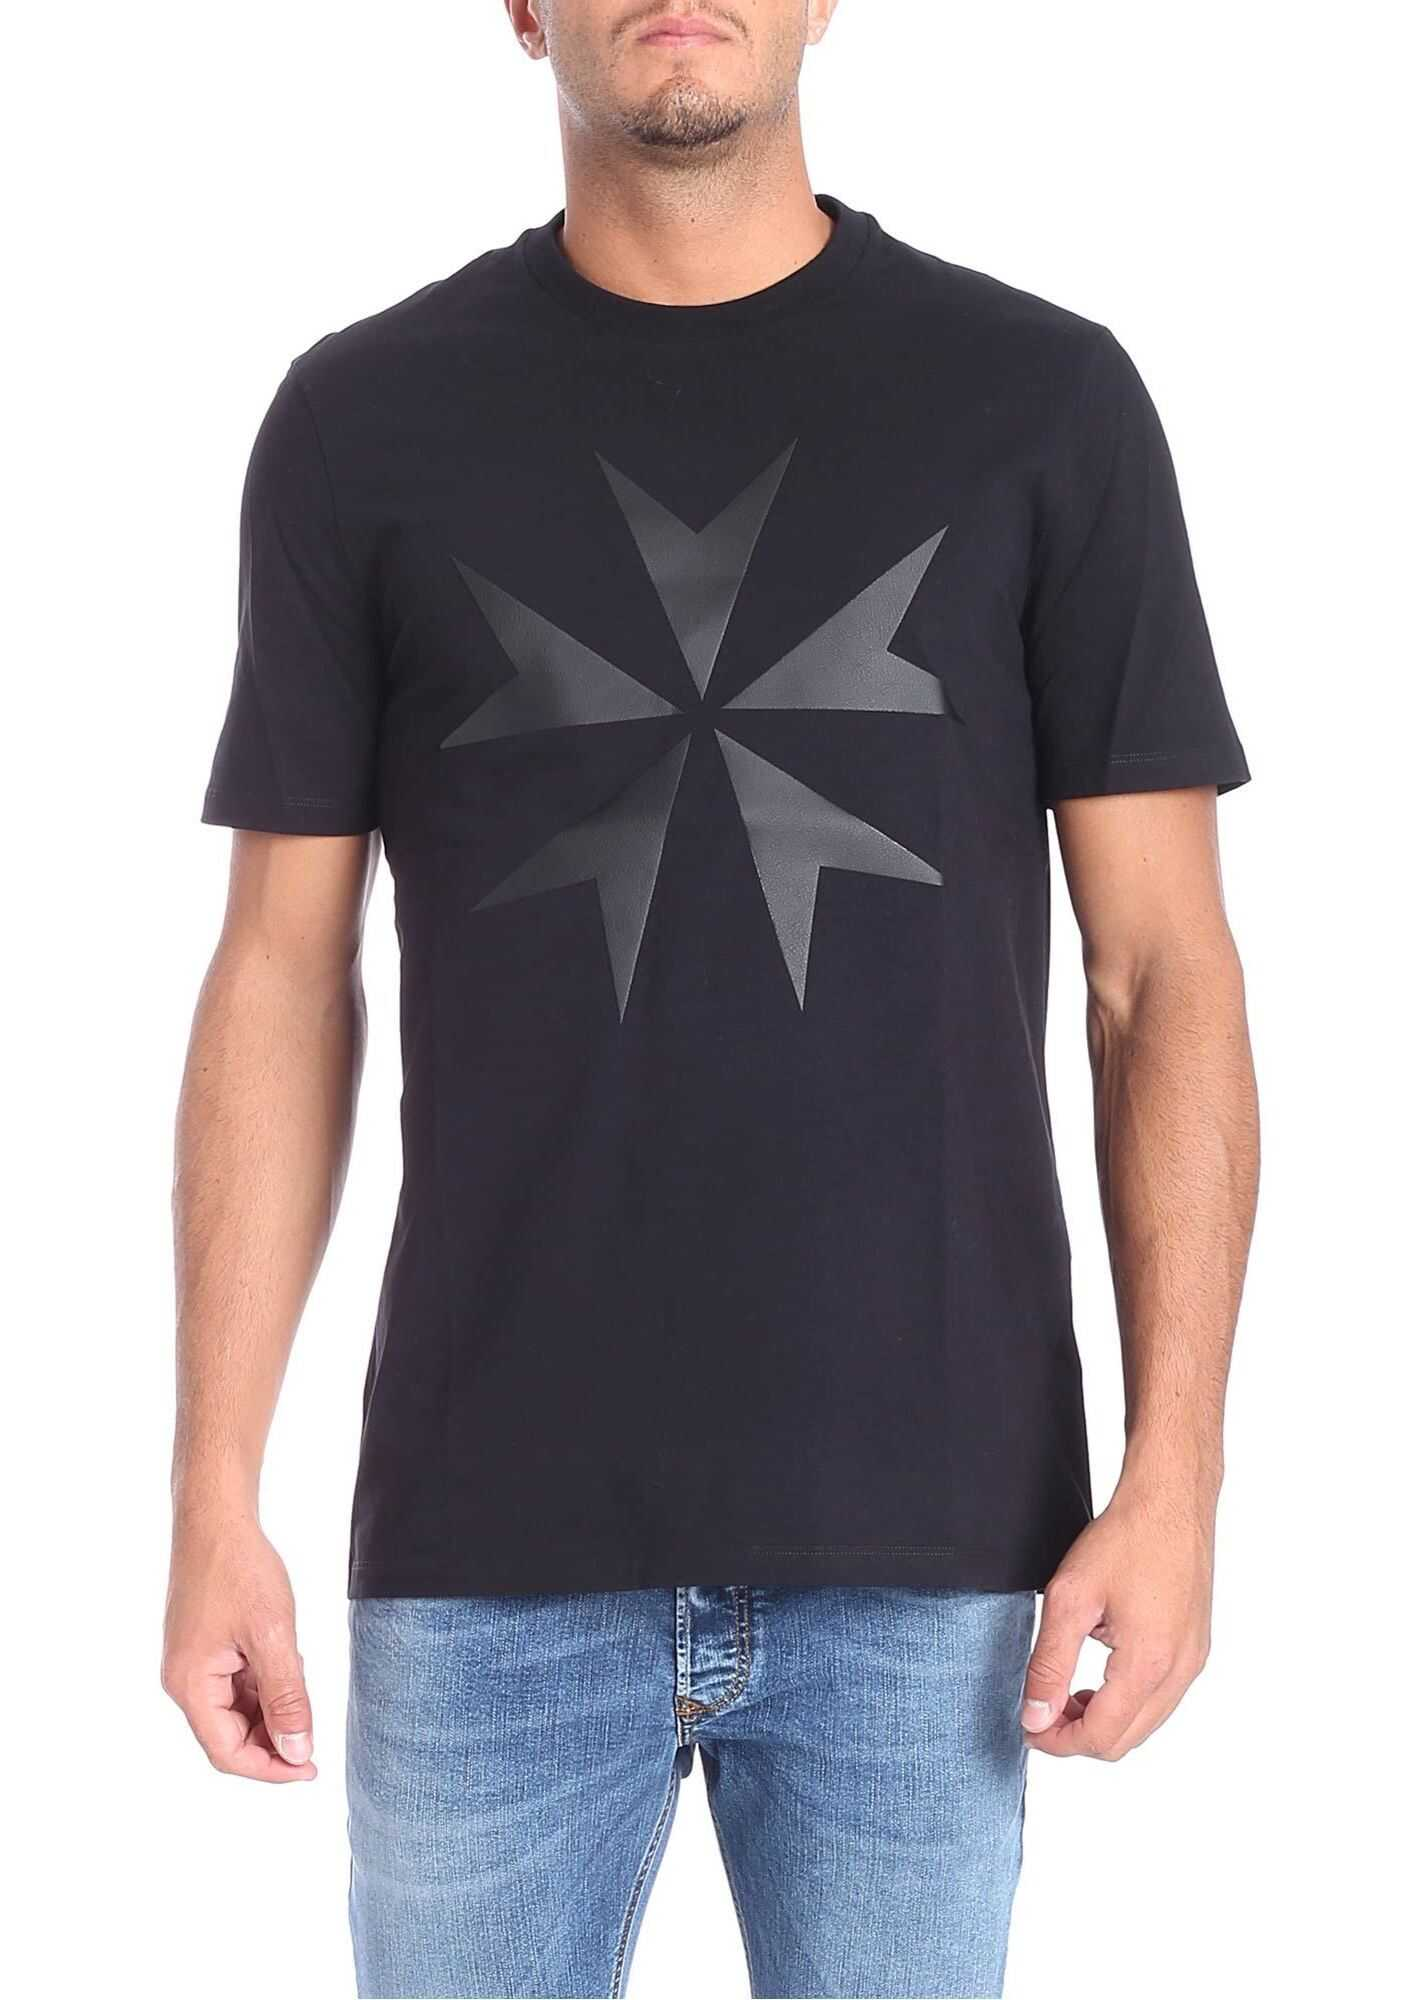 Black T-Shirt With Eco-Leather Insert